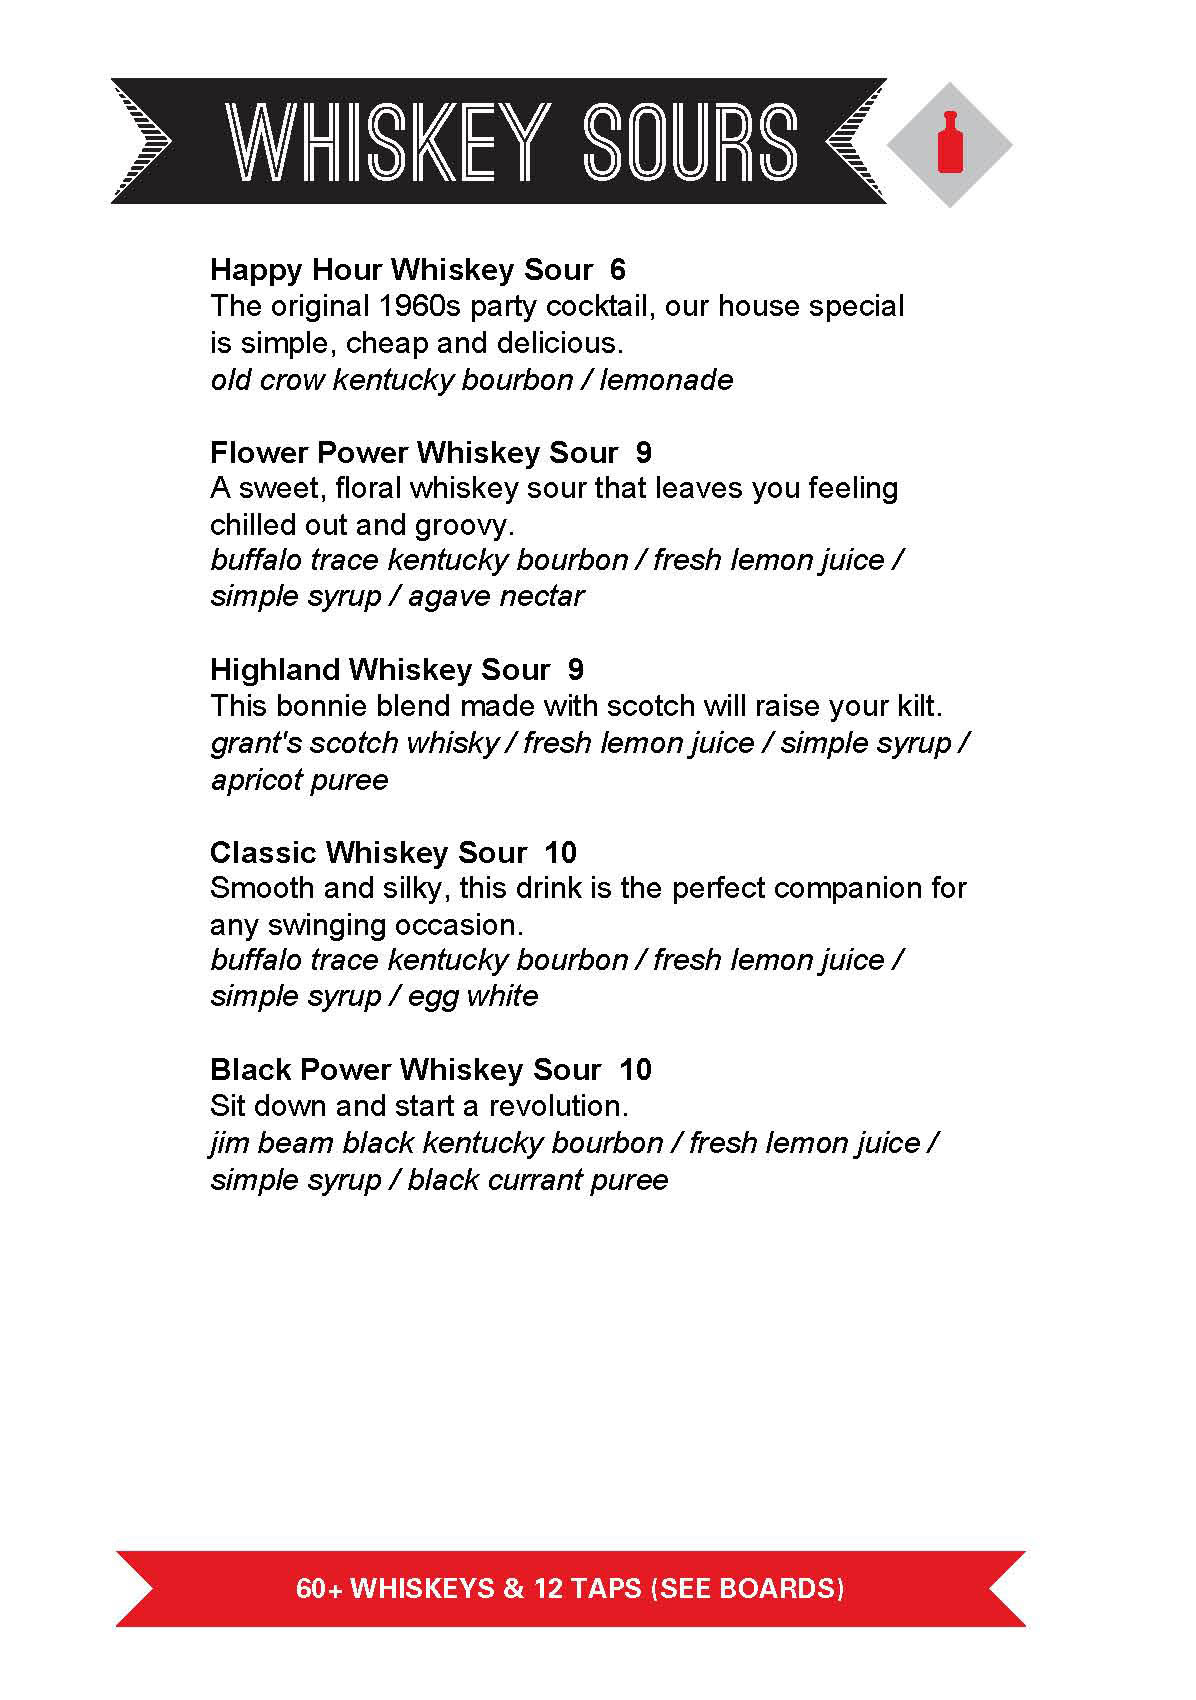 Trestle Whiskey Sours nov2013